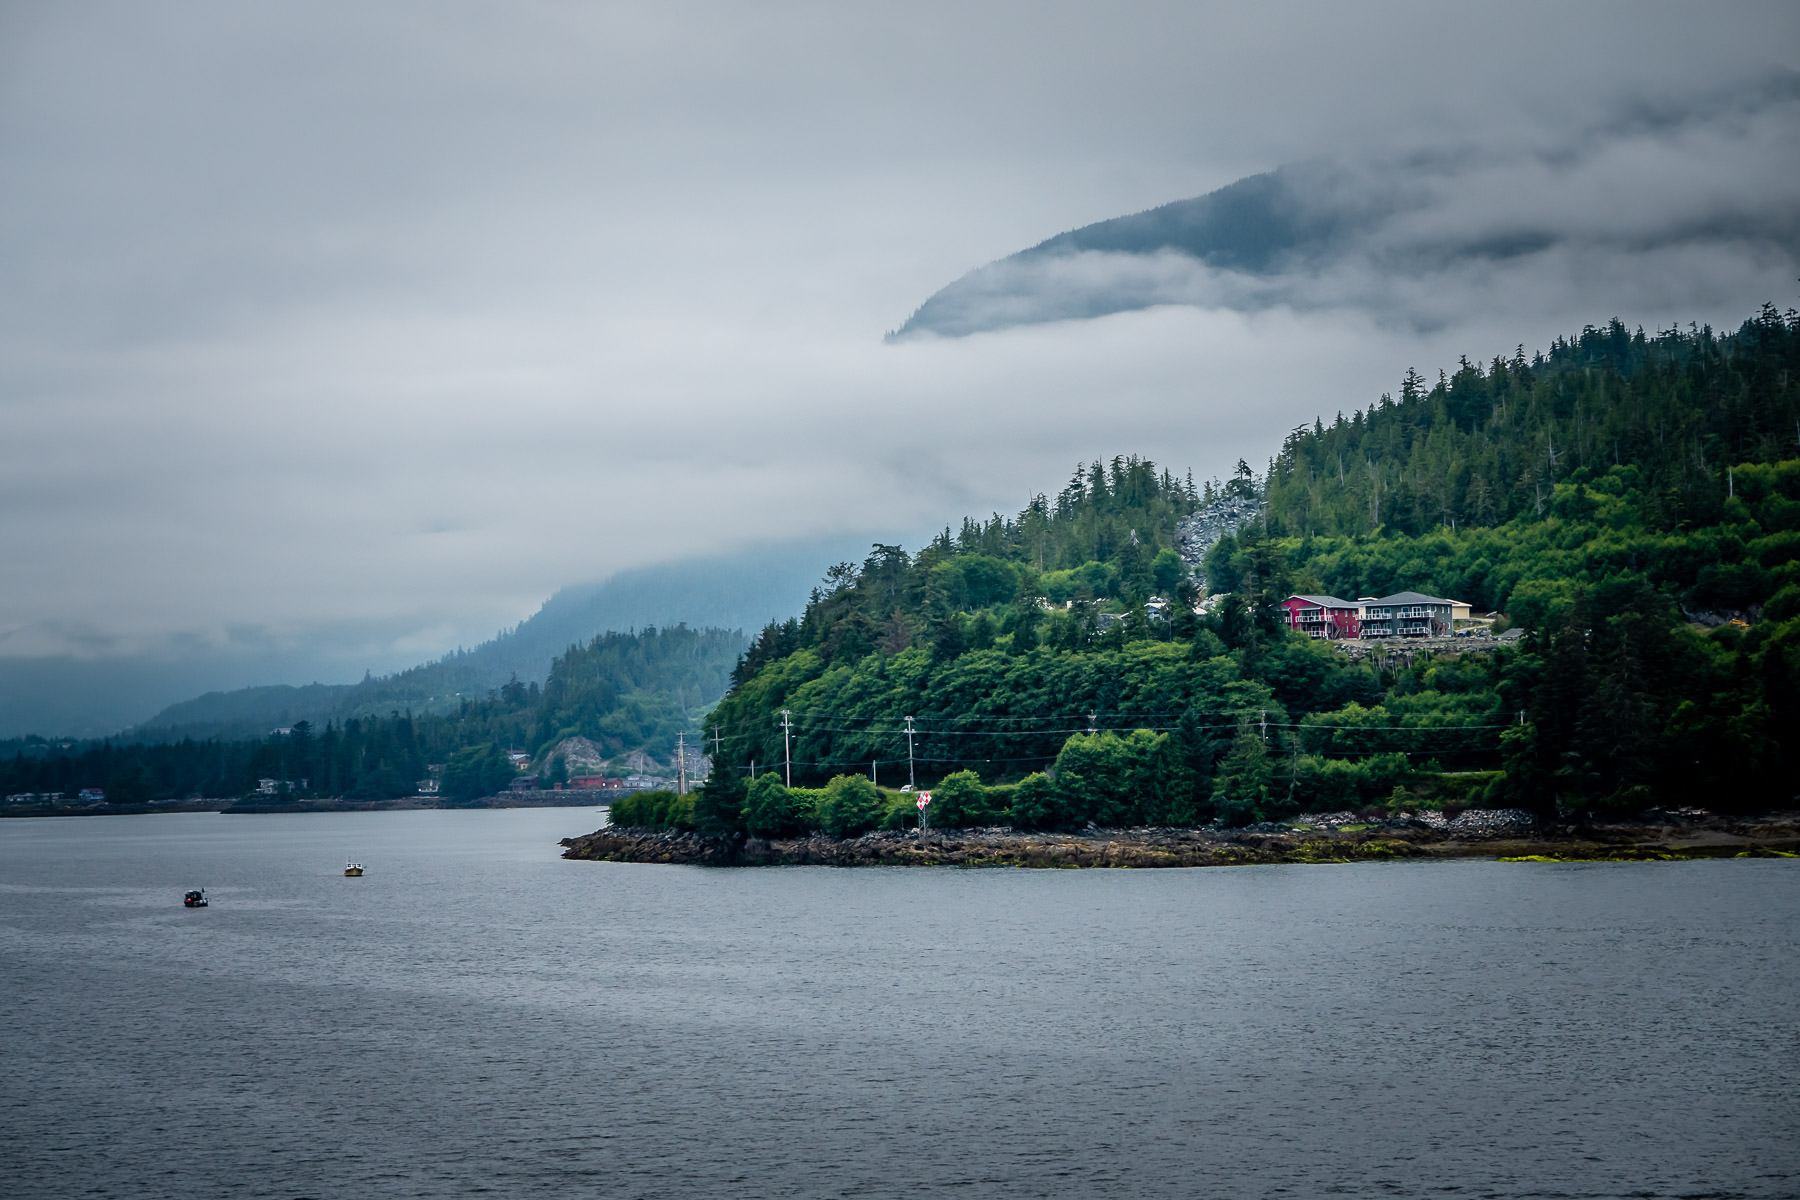 The morning fog of the Tongass Narrows begins to lift on Ketchikan, Alaska.